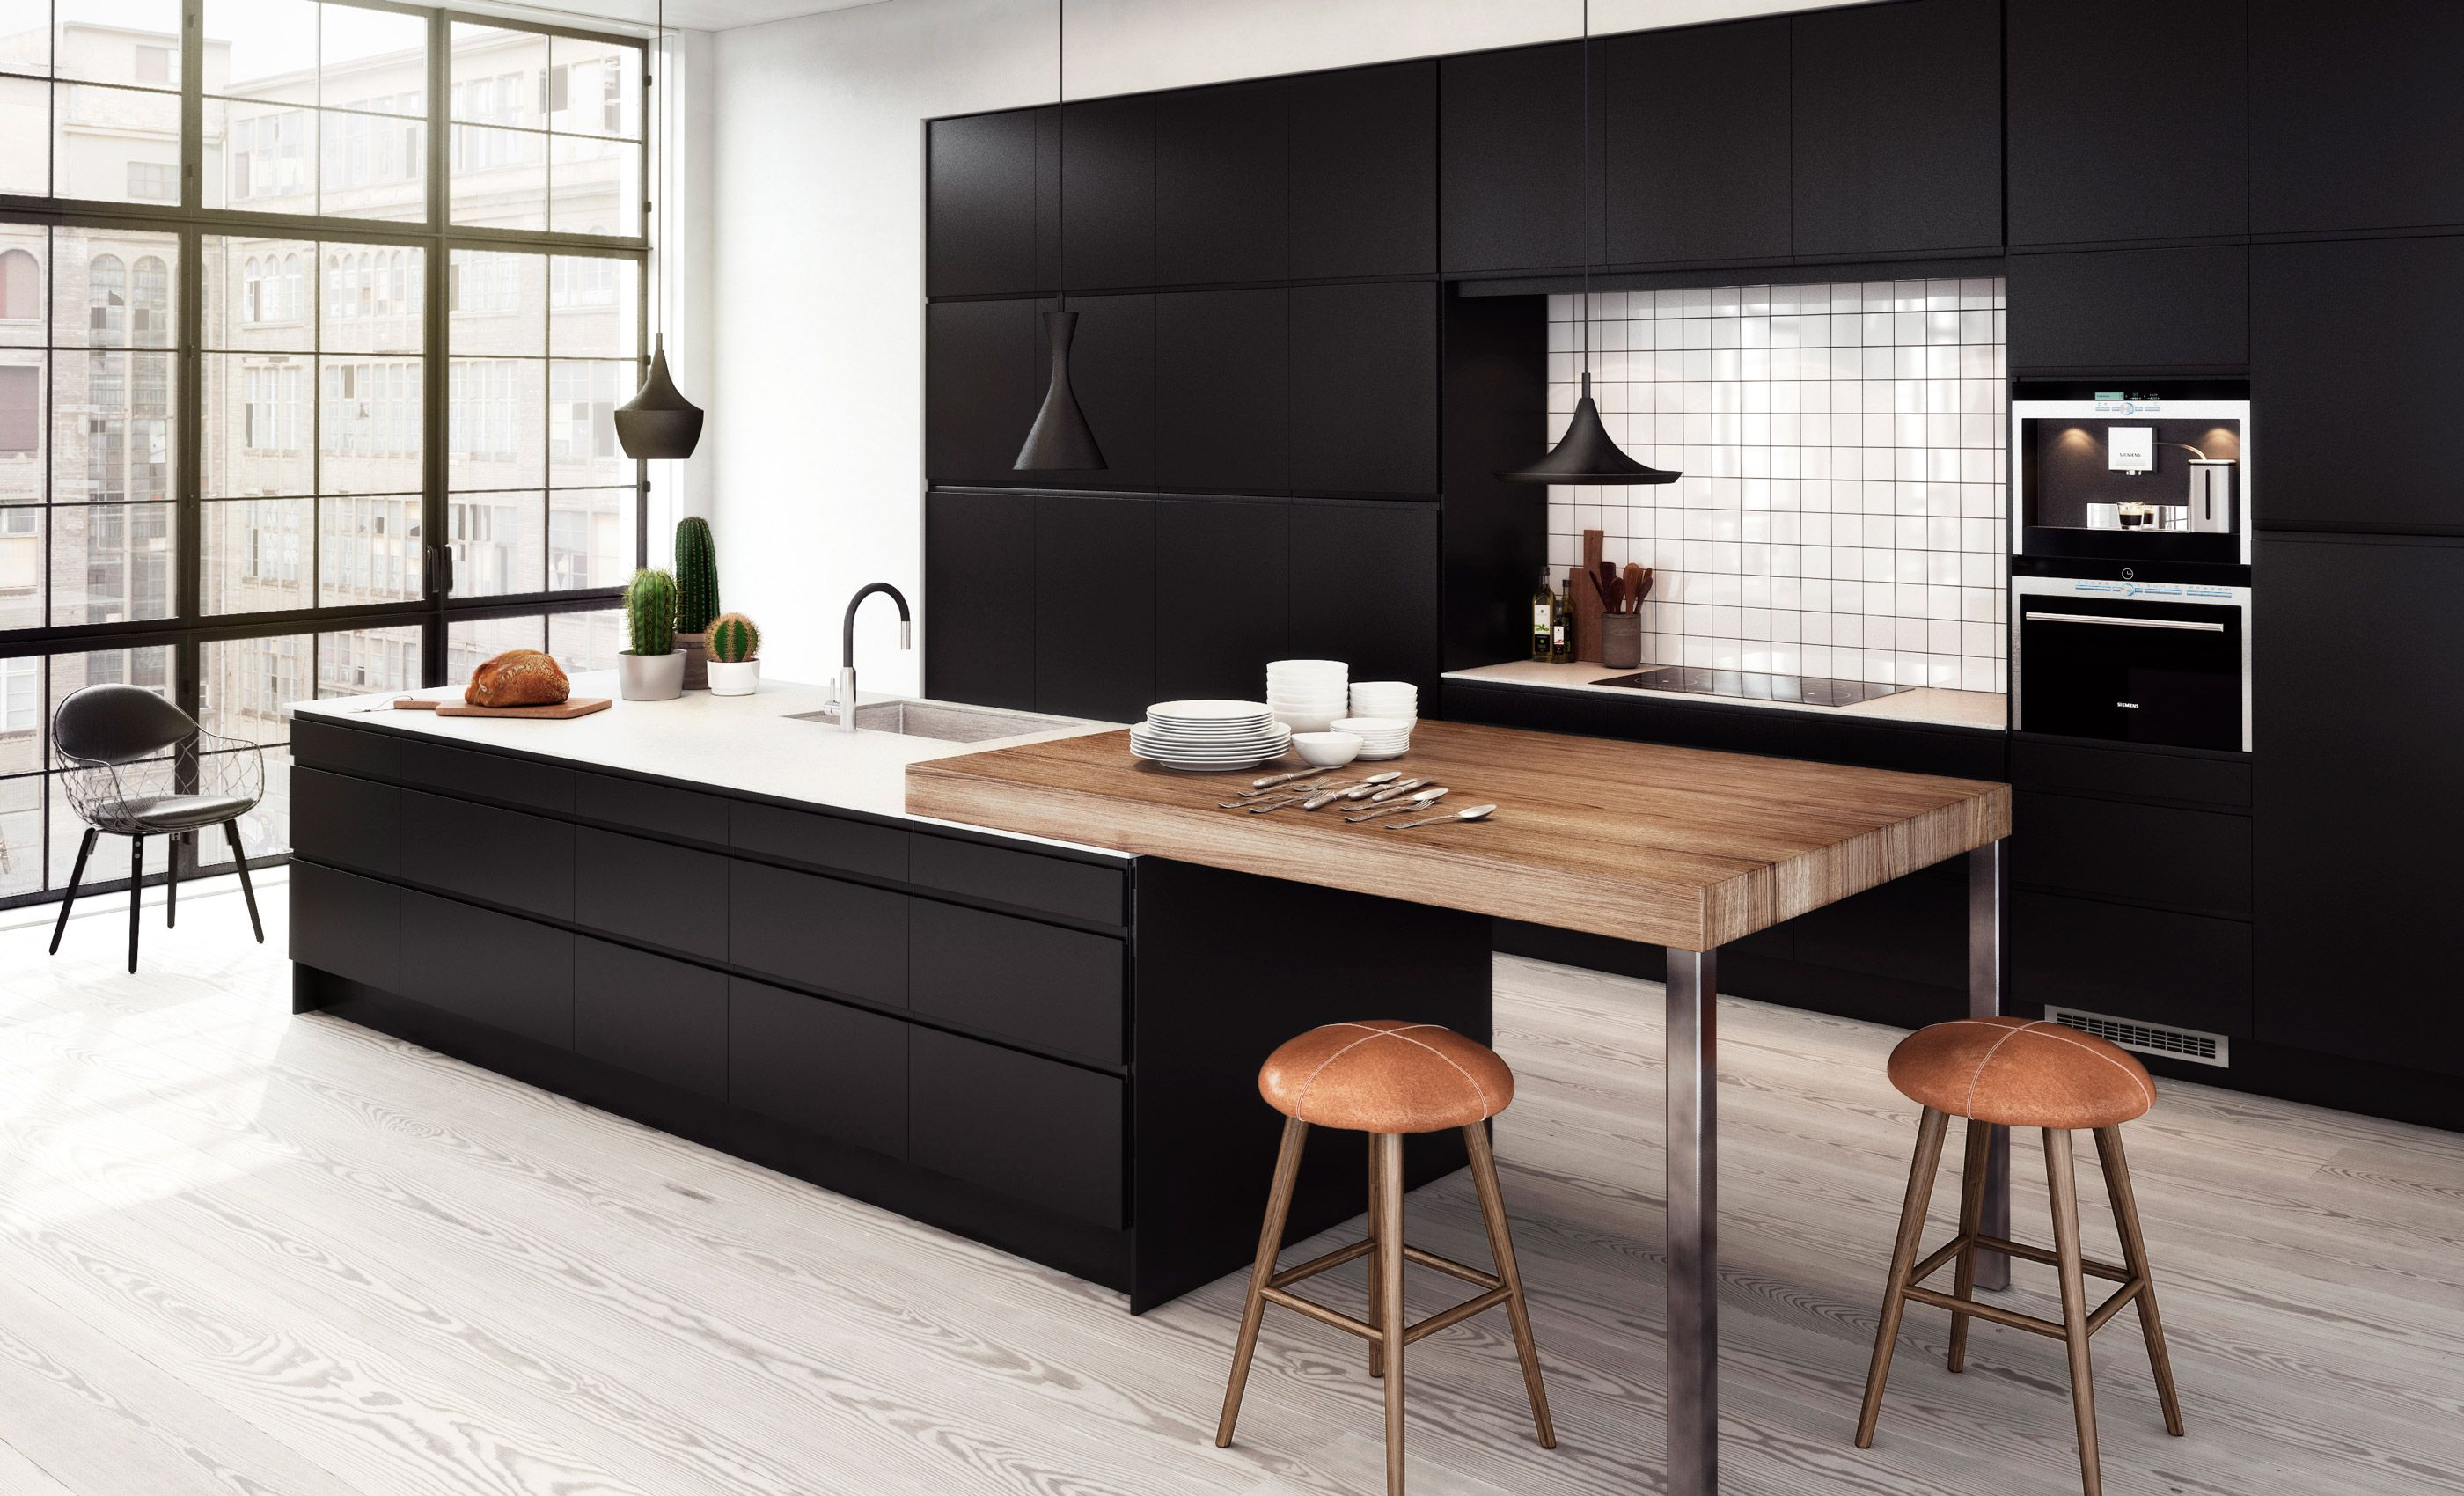 Ikea Tingsryd Küche Image Result For Ikea Tingsryd Kitchen In 2019 Küche